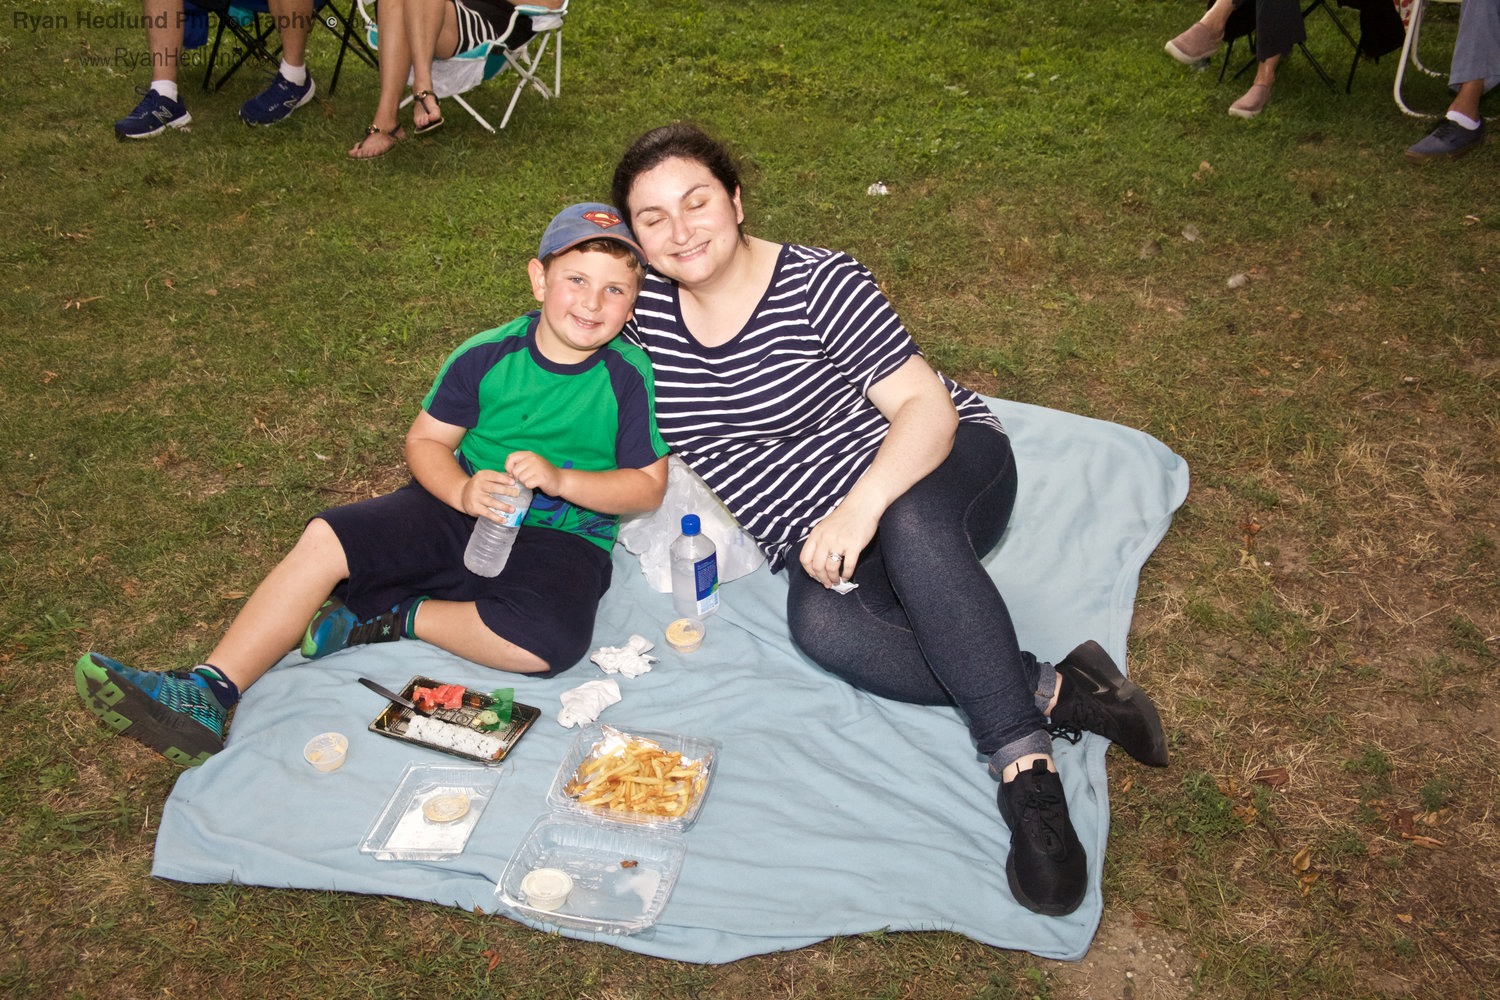 Levi Laub and his mother, Chani, enjoyed dinner during the performance.